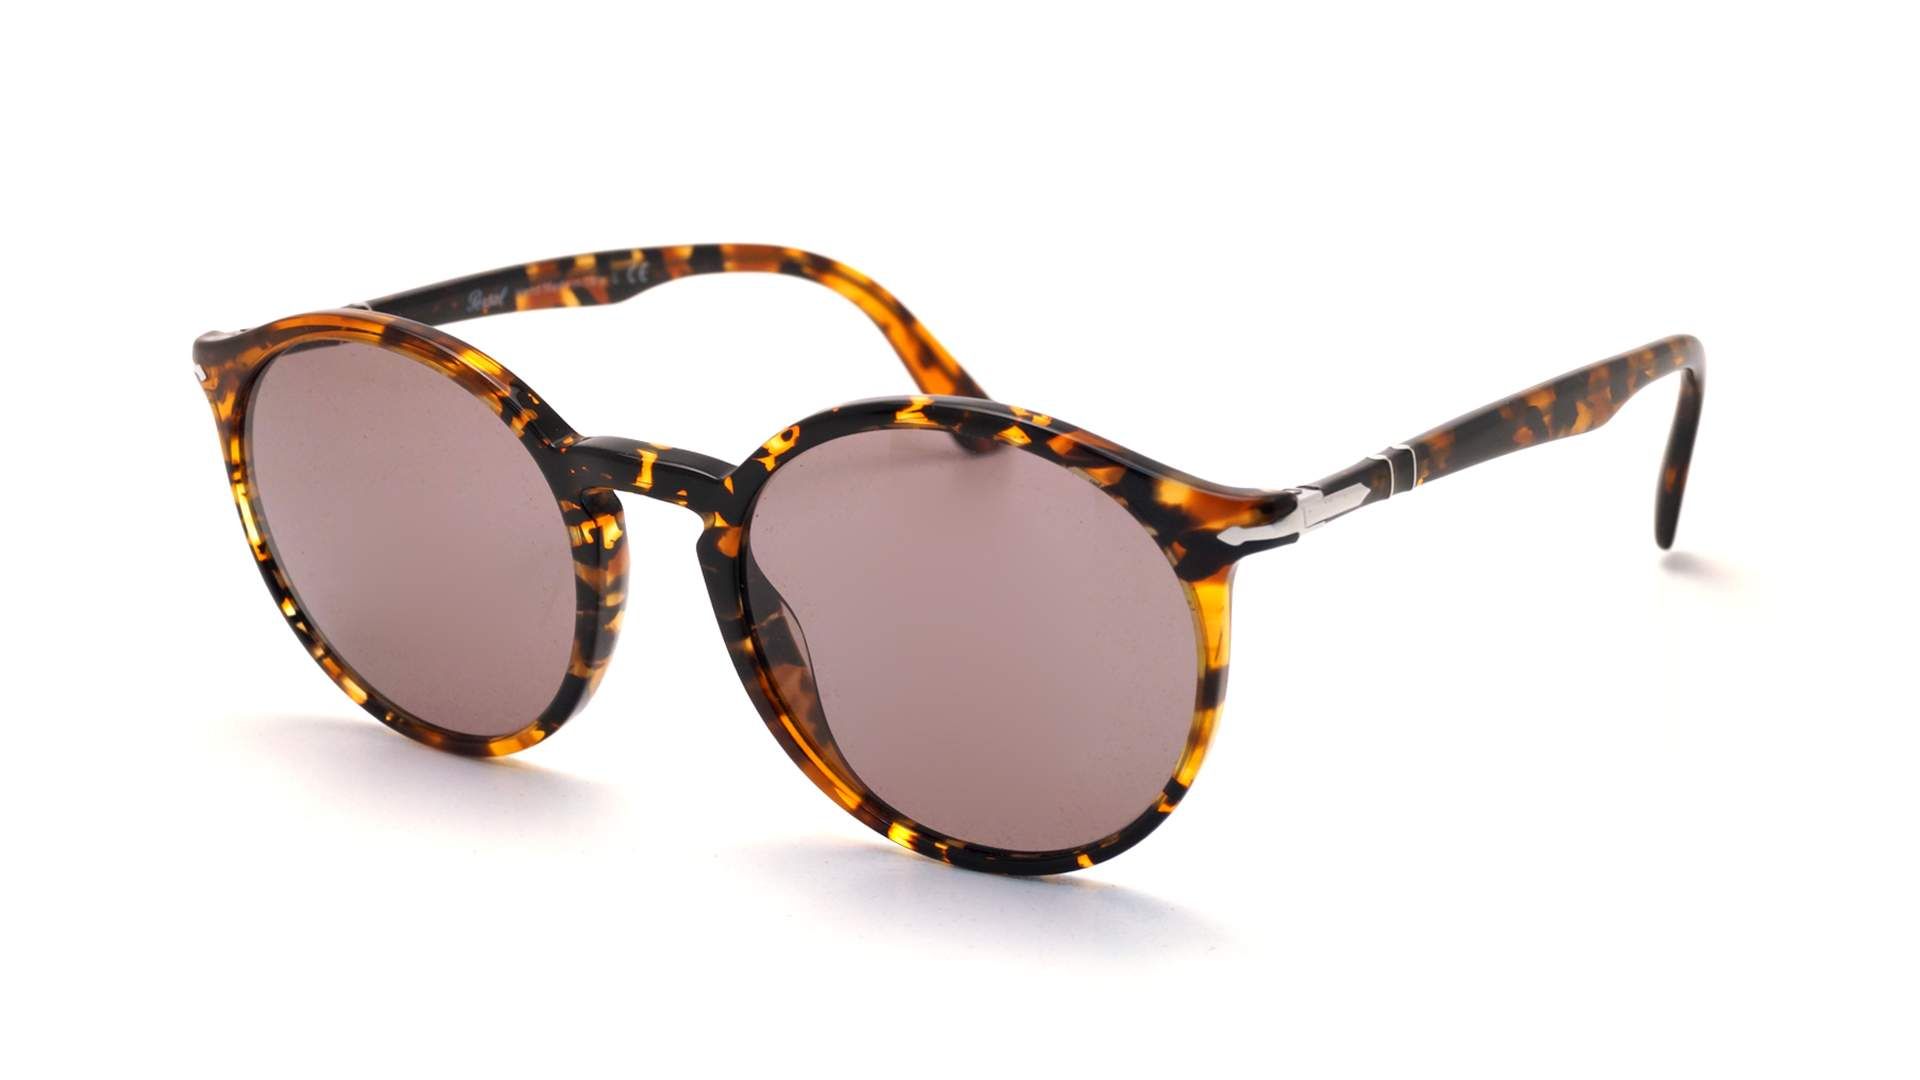 Po3214s 20 90 € 53 ÉcaillePrix 1081r5 Persol 137 Visiofactory wn0ym8OPvN